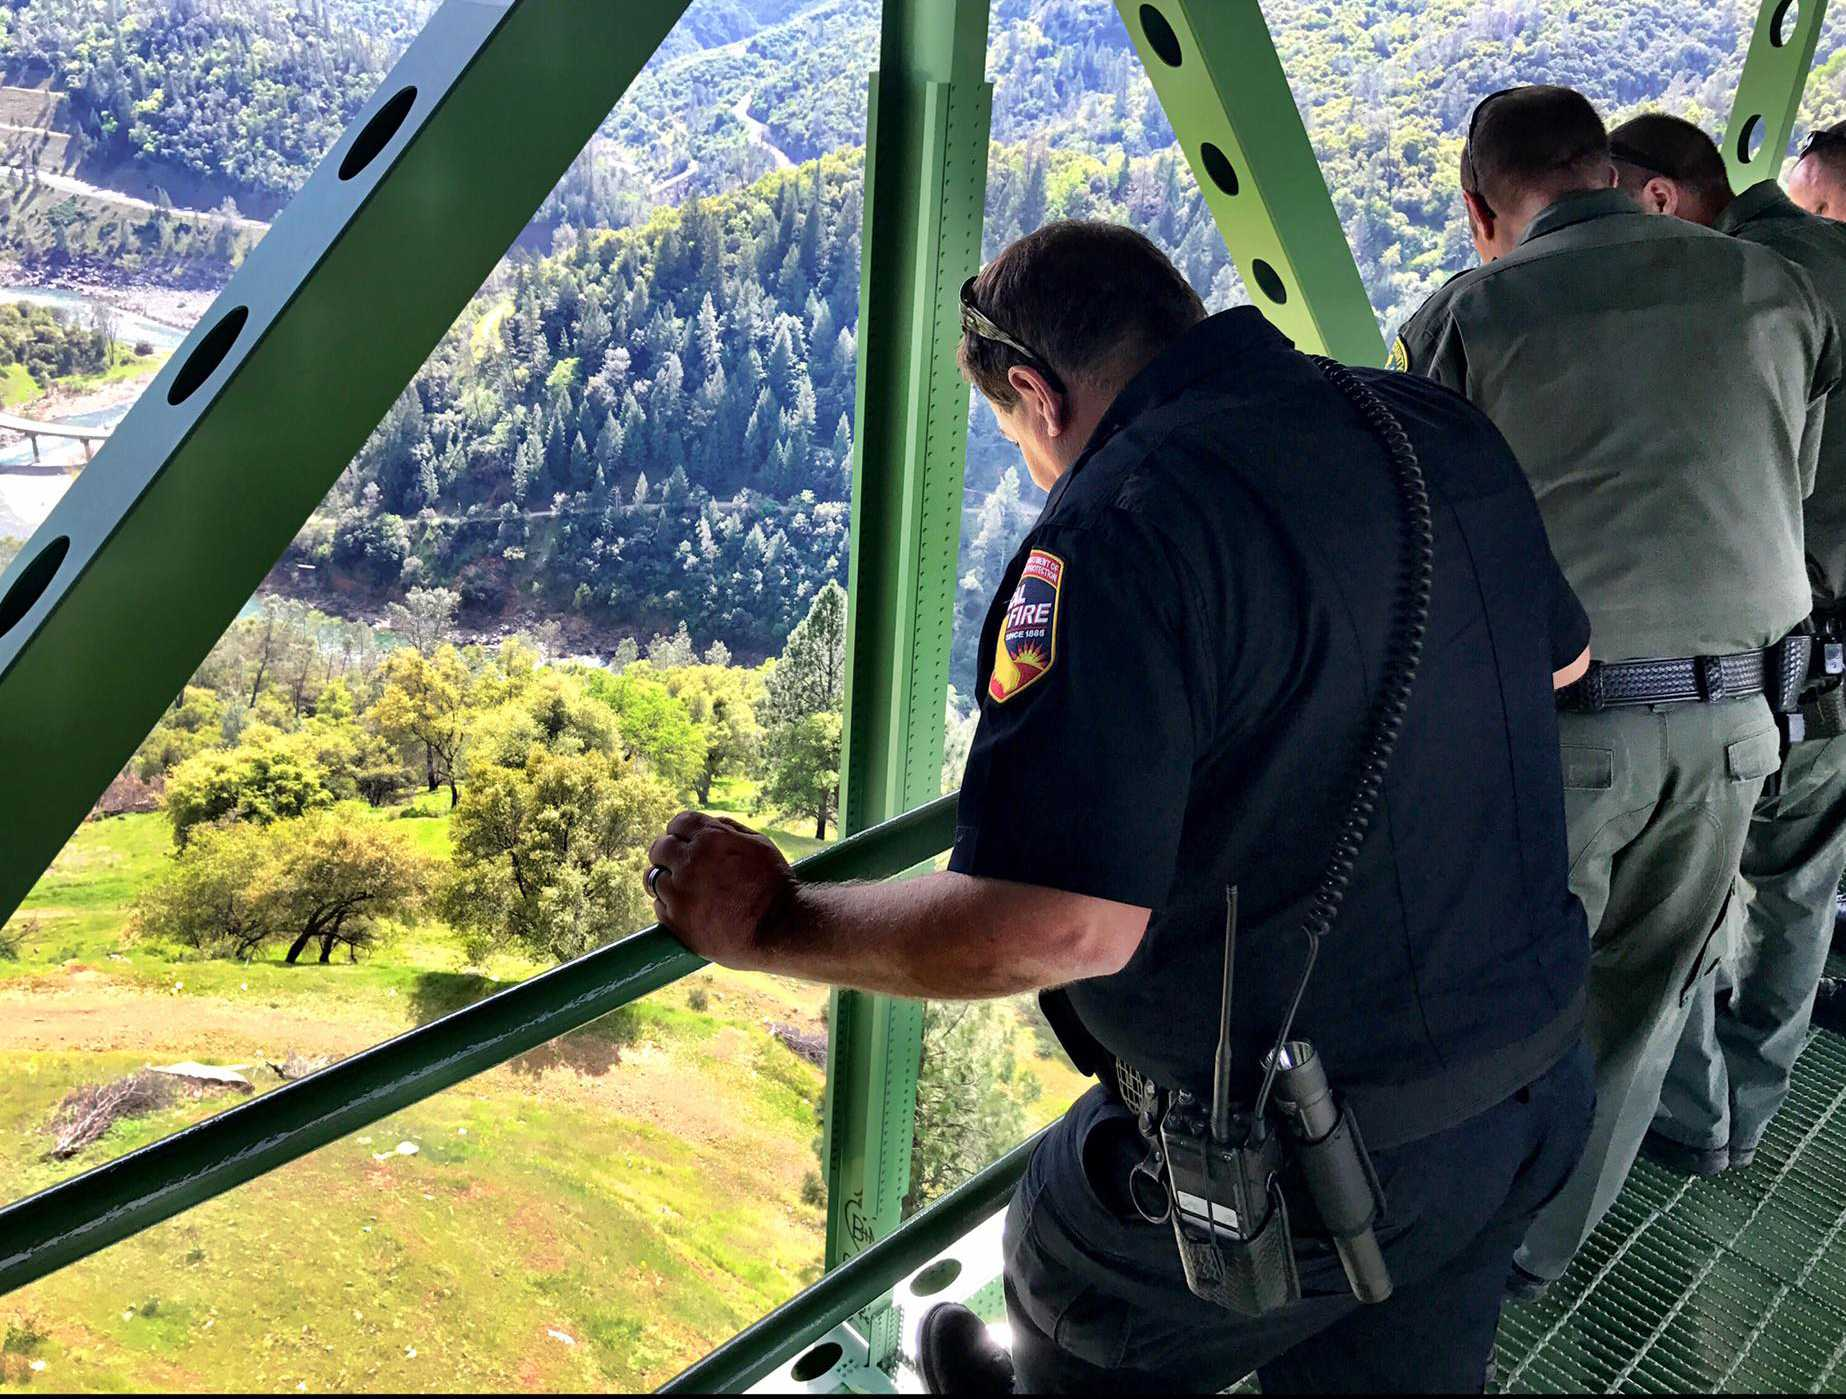 California woman falls off 730ft bridge while taking selfie